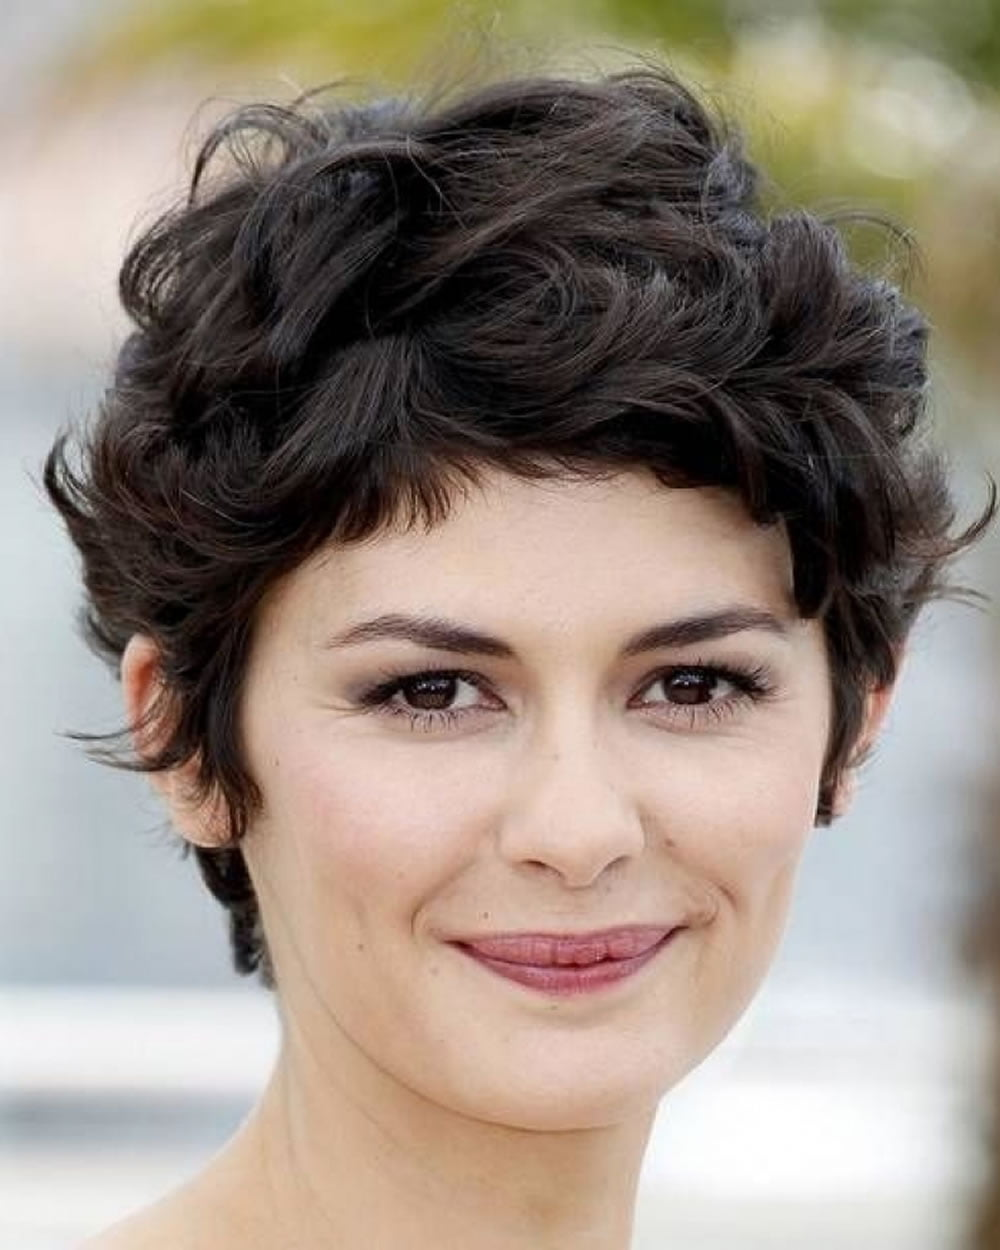 pixie haircuts for faces pixie hairstyles for and thin hair 2018 page 5020